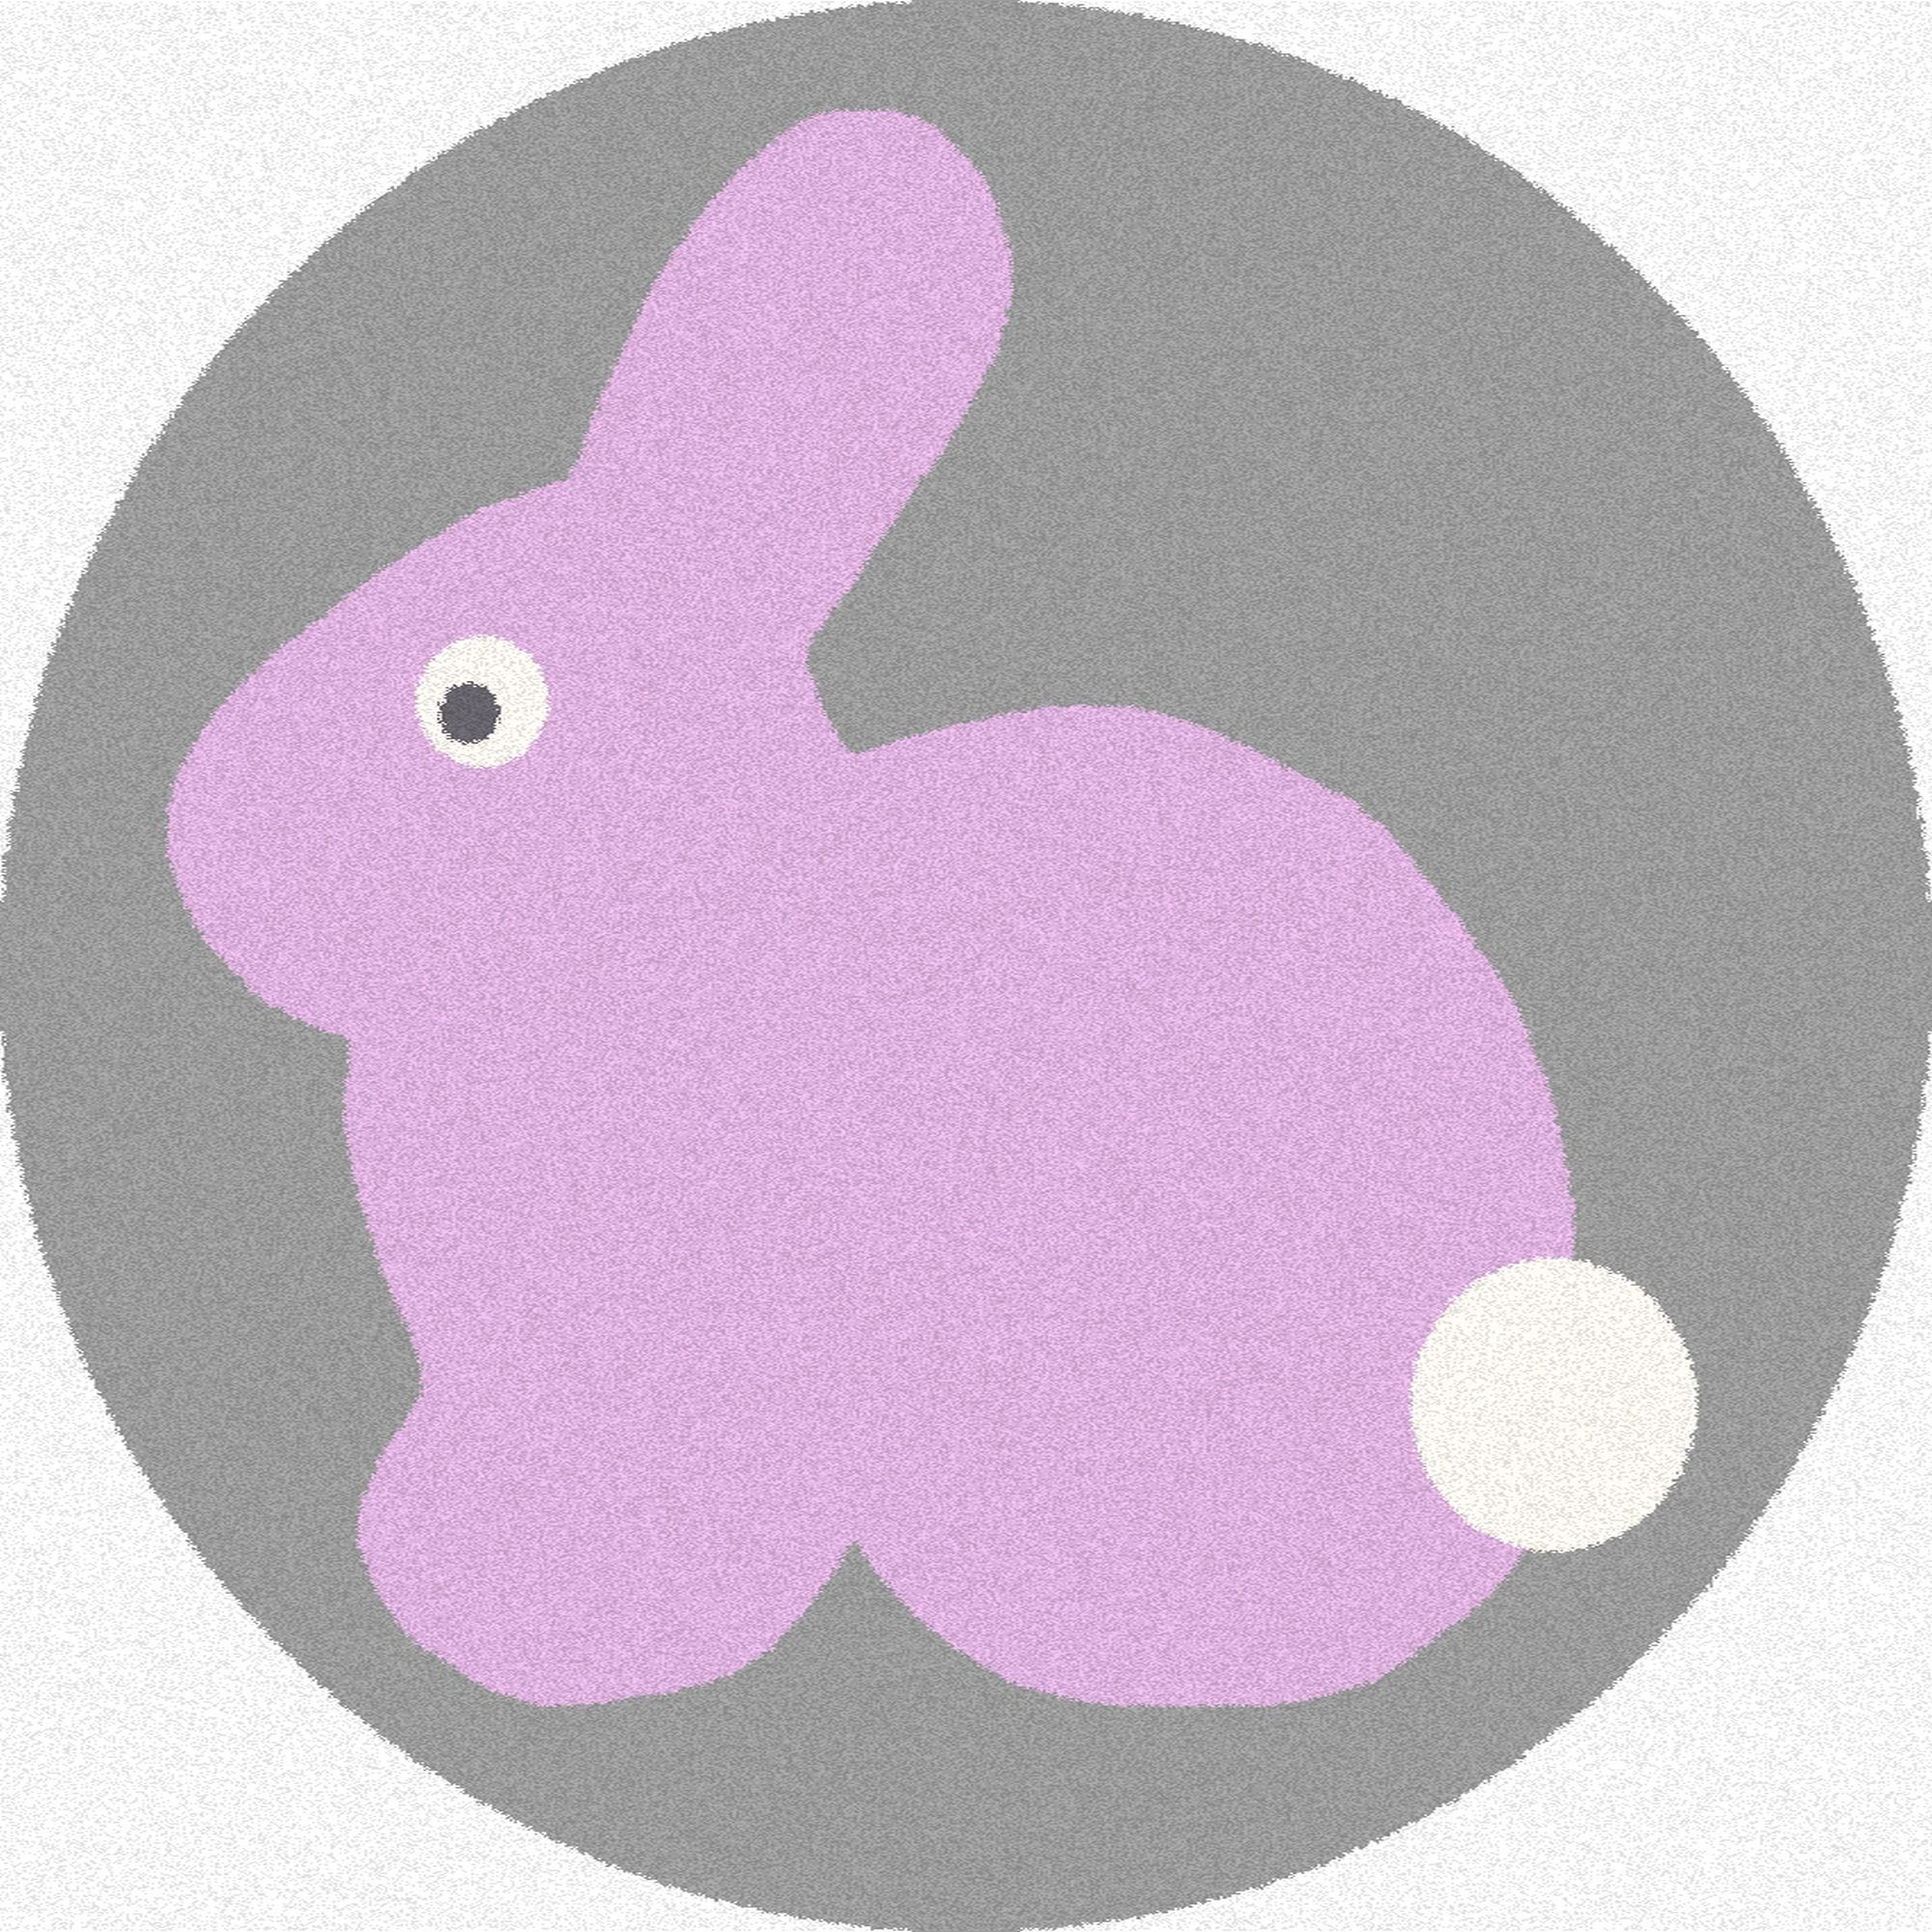 Covor din PP Rabbit Pink Round, Wilton imagine